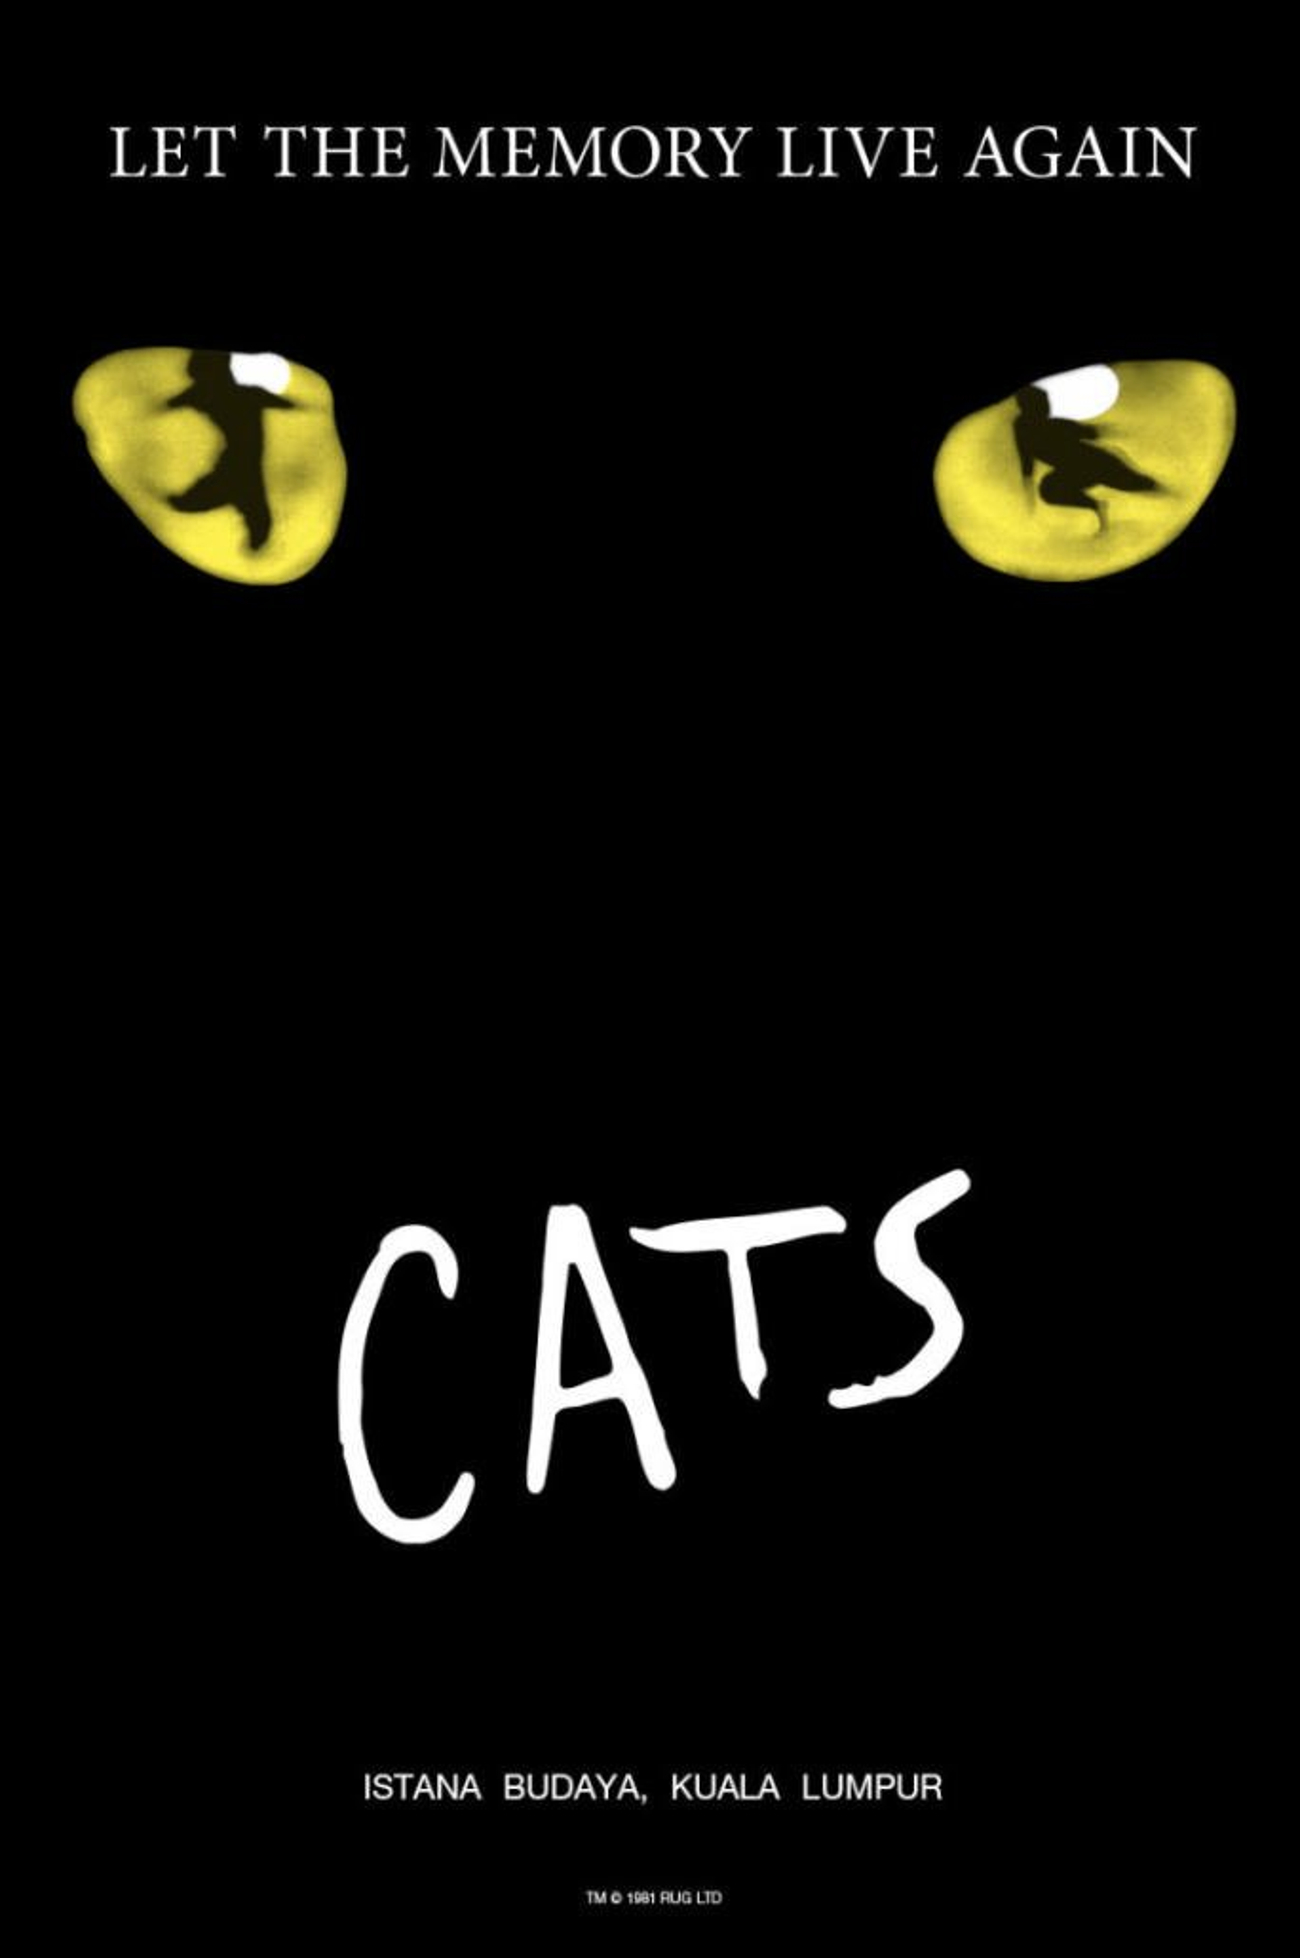 CATS to Let the Memory Live Again at Istana Budaya